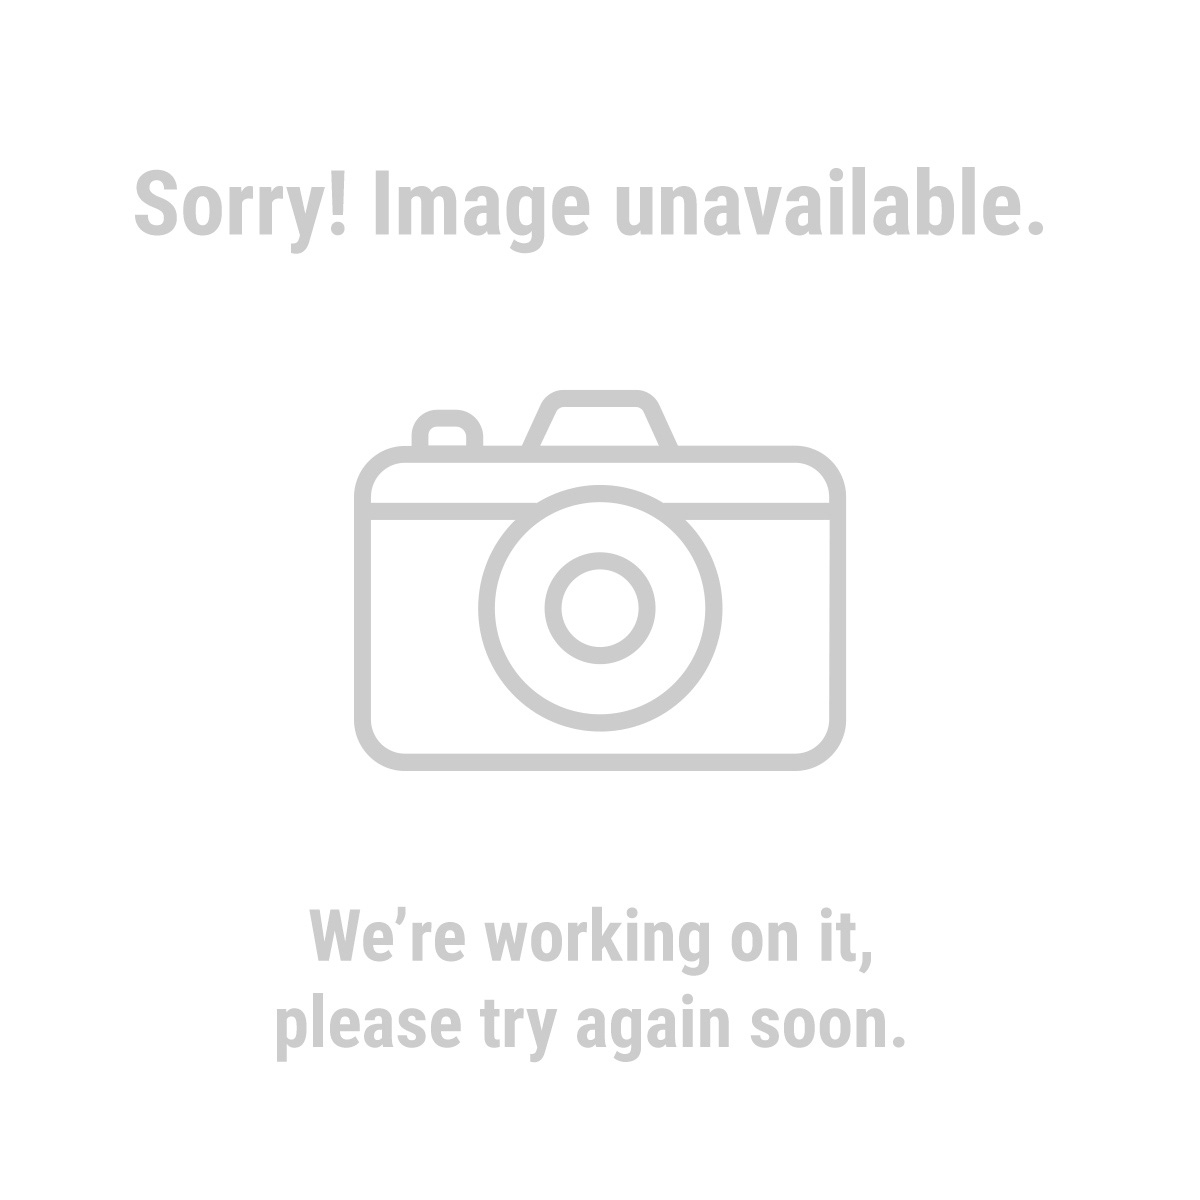 Pittsburgh 65062 8-in-1 Stubby Screwdriver